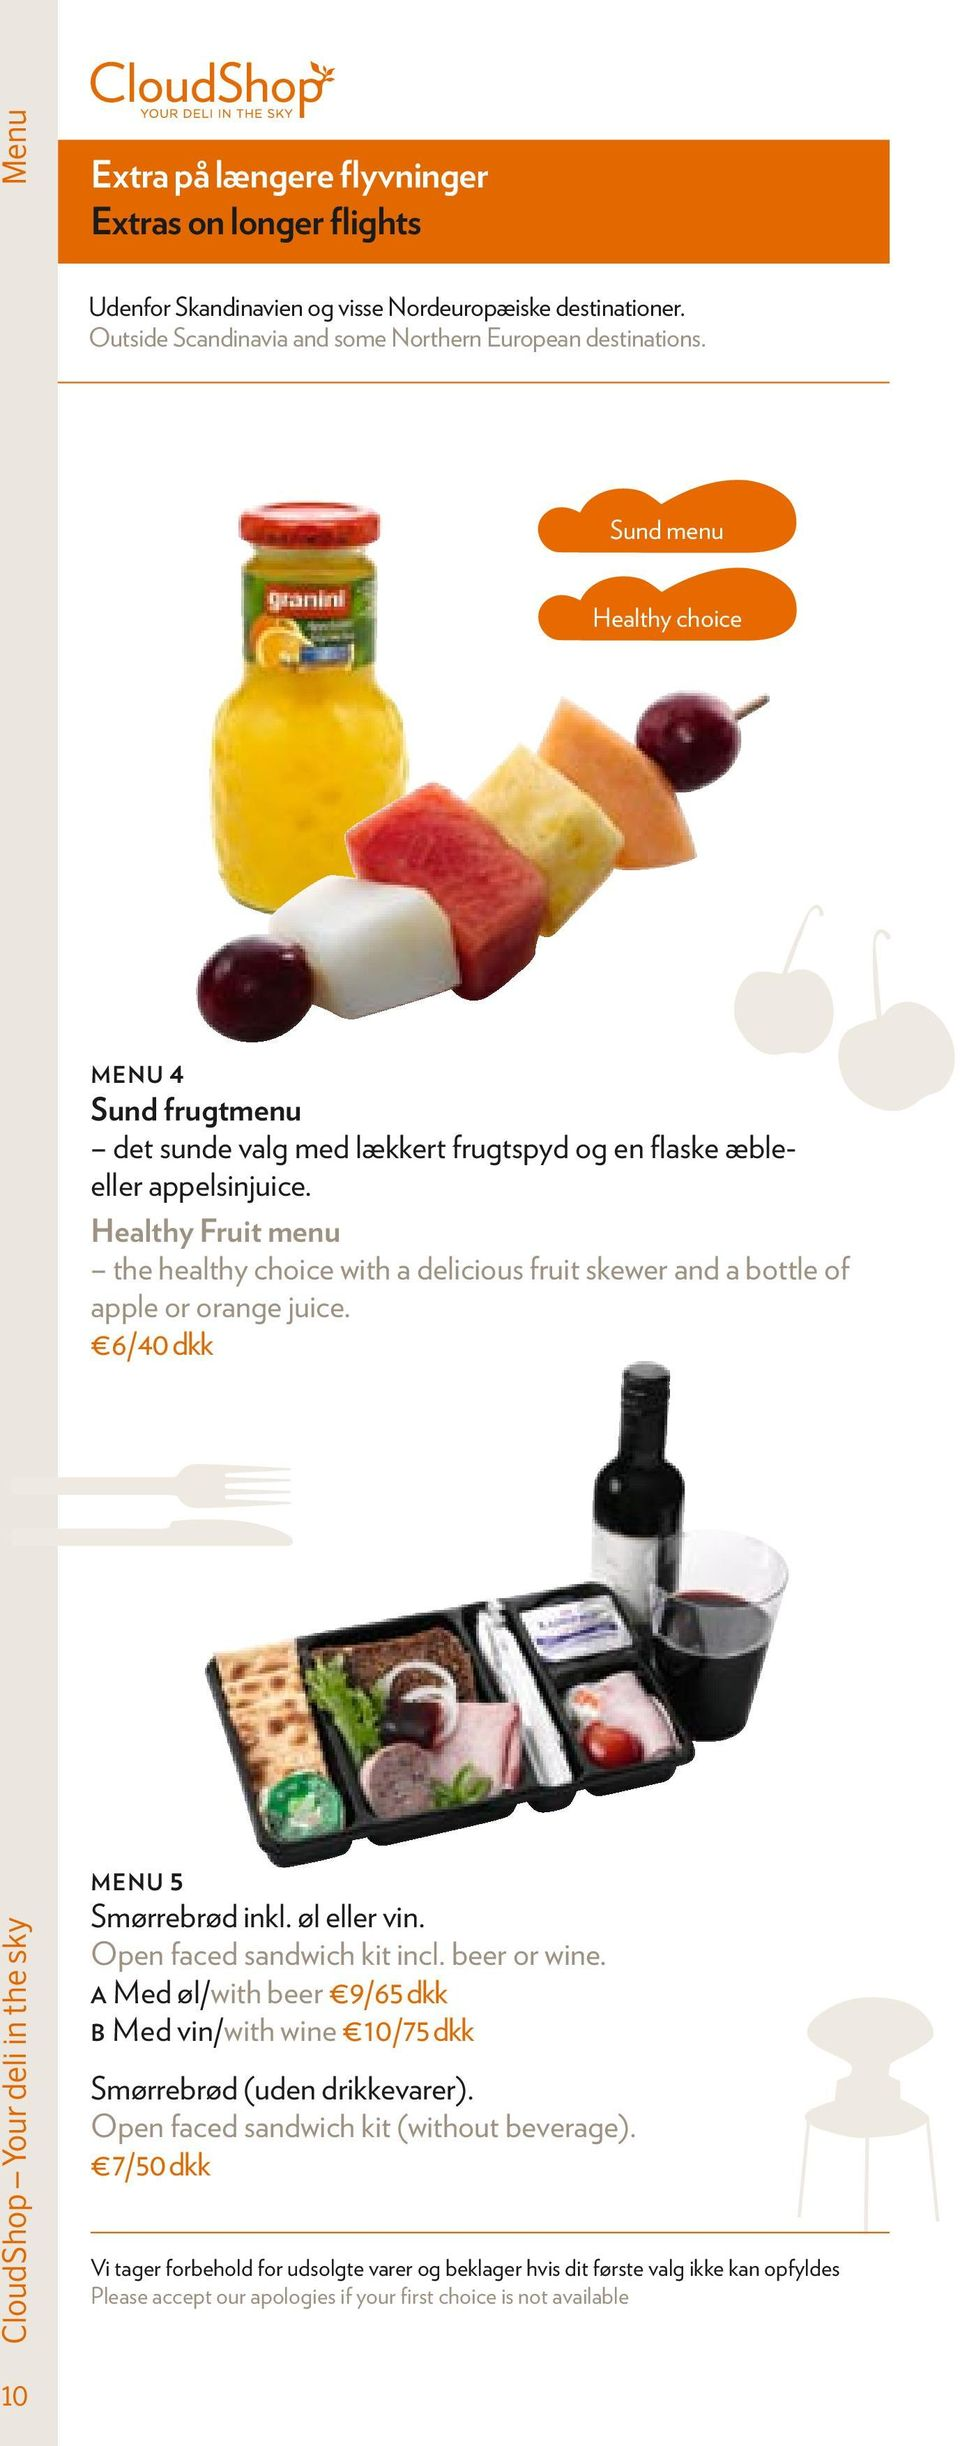 Healthy Fruit menu the healthy choice with a delicious fruit skewer and a bottle of apple or orange juice. 6/40 dkk Menu 5 Smørrebrød inkl. øl eller vin.